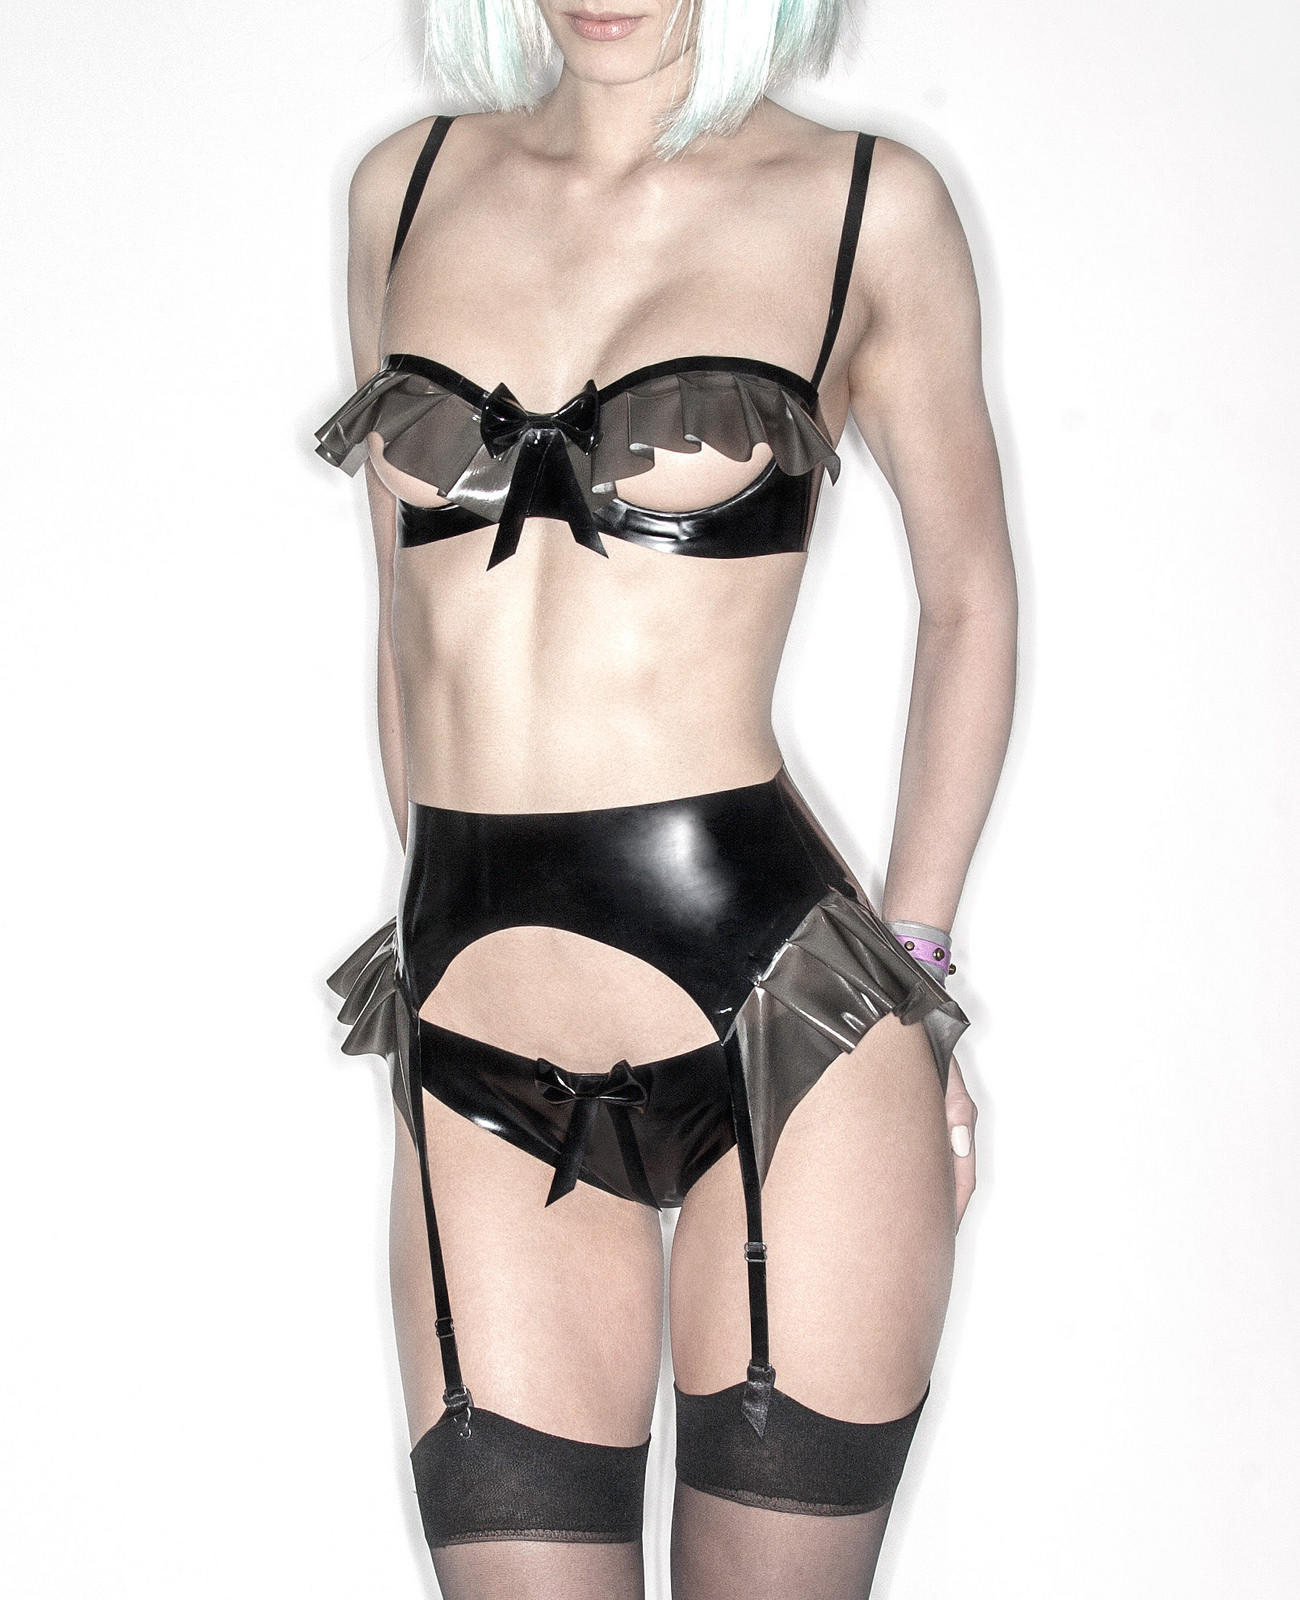 756e2cf838d Kitty Latex Open Cup Bra in Black from bordellolingerie.com